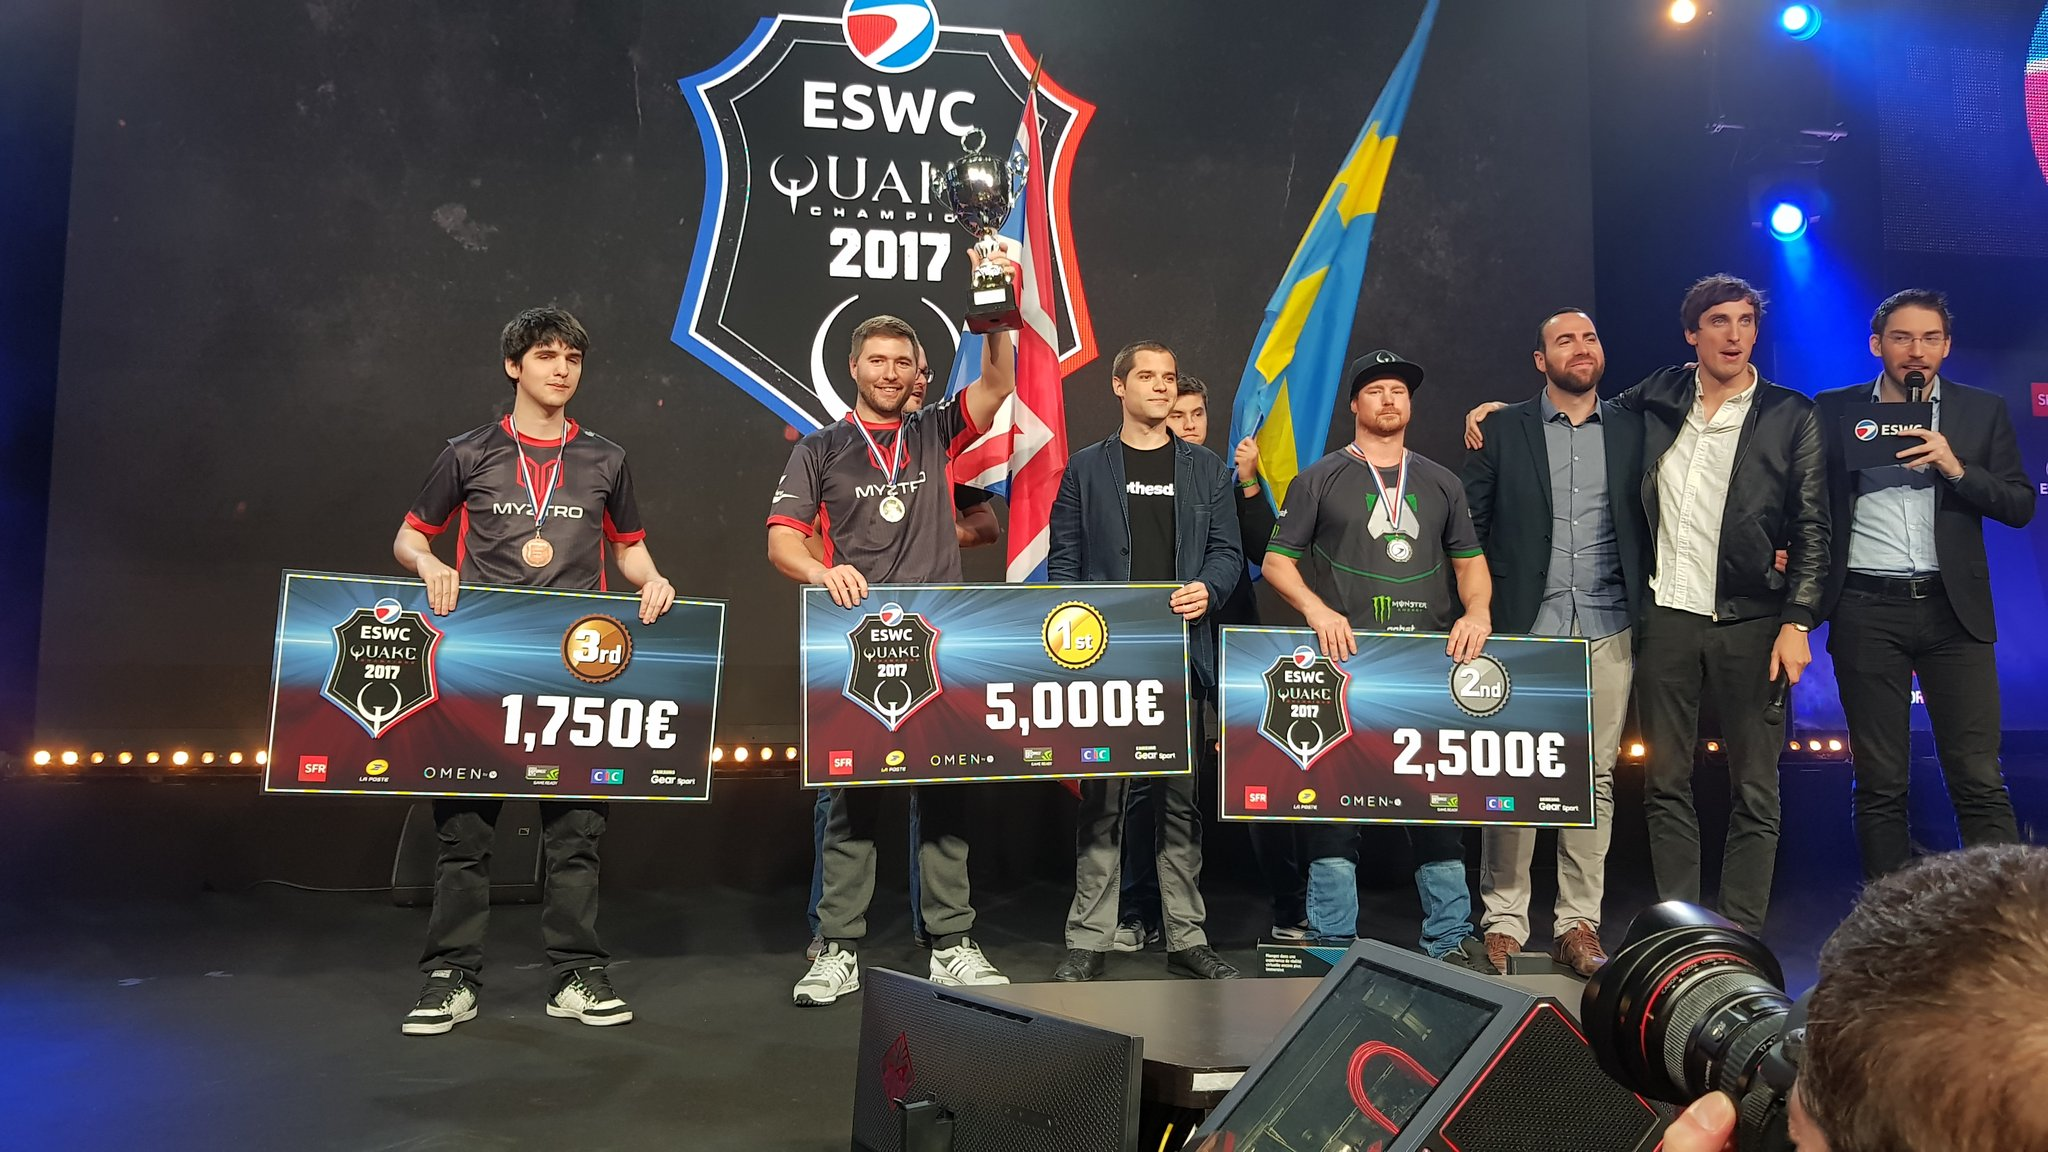 GaRpY becomes UK's first eSport competitor to win a Major at ESWC PGW 2017